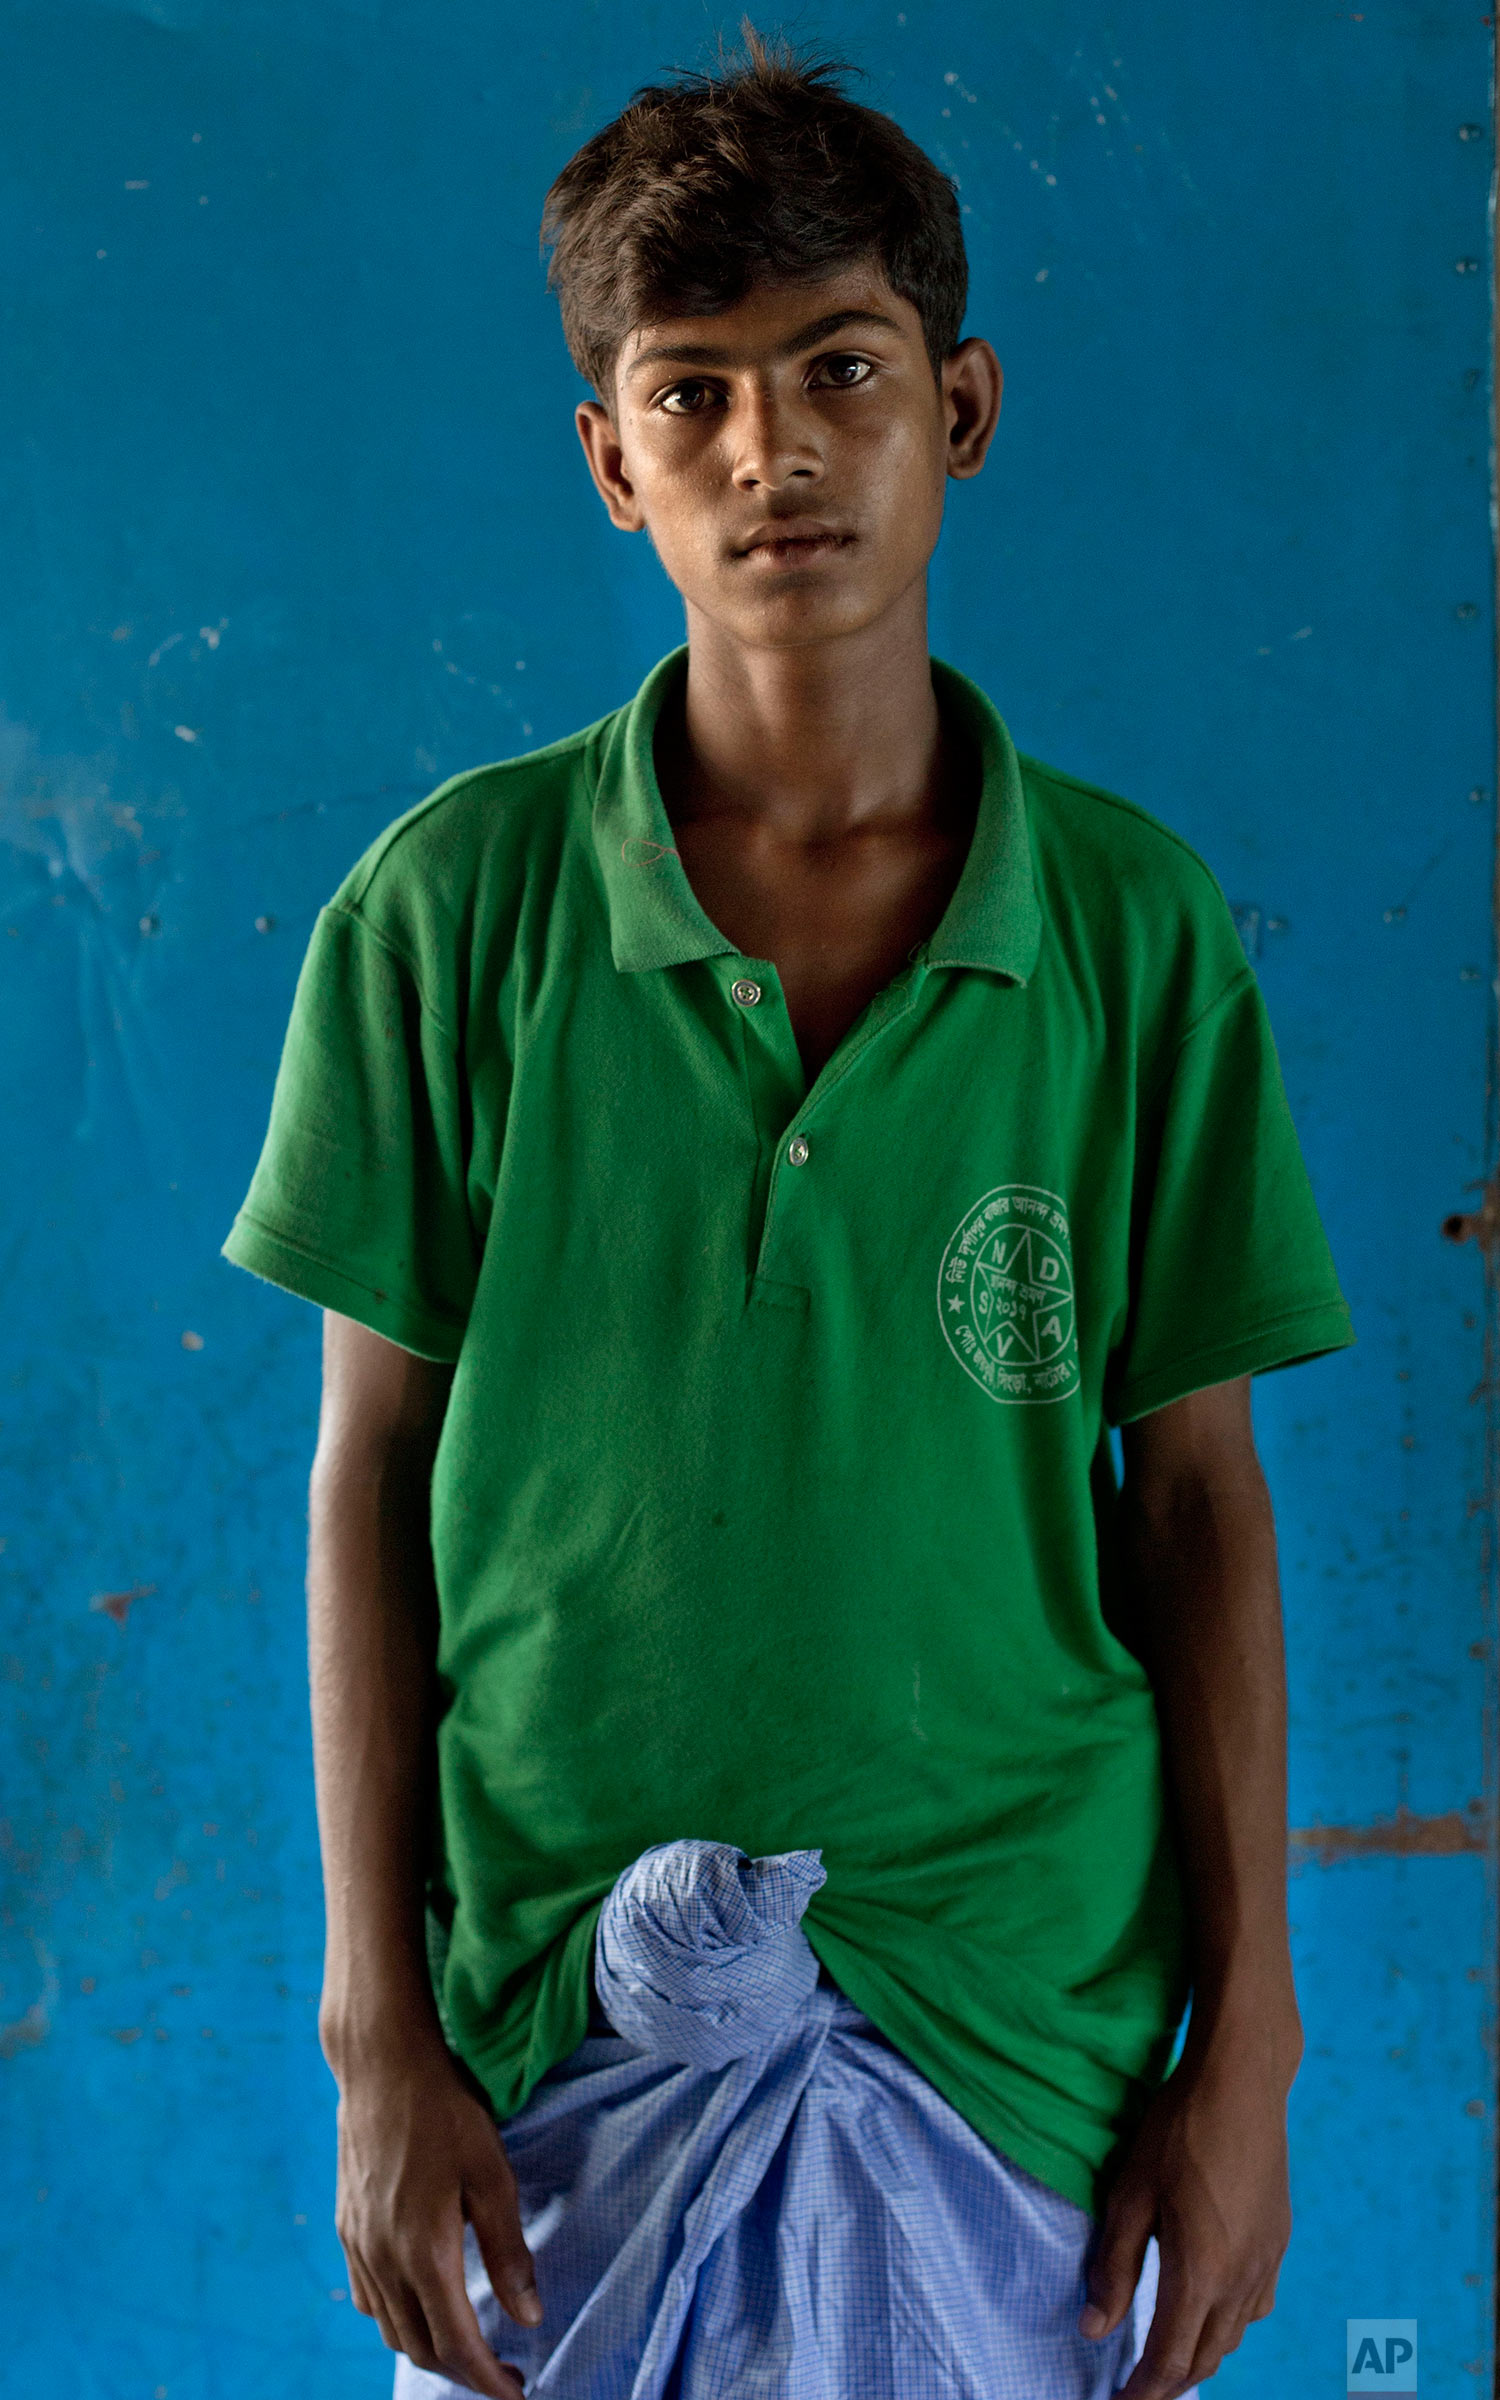 In this Oct. 1, 2017, photo, 16-year-old Abdul Rashid, from Myanmar's Moidaung village, poses for a photograph at a transit shelter at Kutupalong camp for newly arrived Rohingya refugees in Bangladesh. Abdul's mother drowned when the boat she was traveling in along with her four sons capsized on Sept. 29. The brothers said their father was shot and killed by the Myanmar army. (AP Photo/Gemunu Amarasinghe)